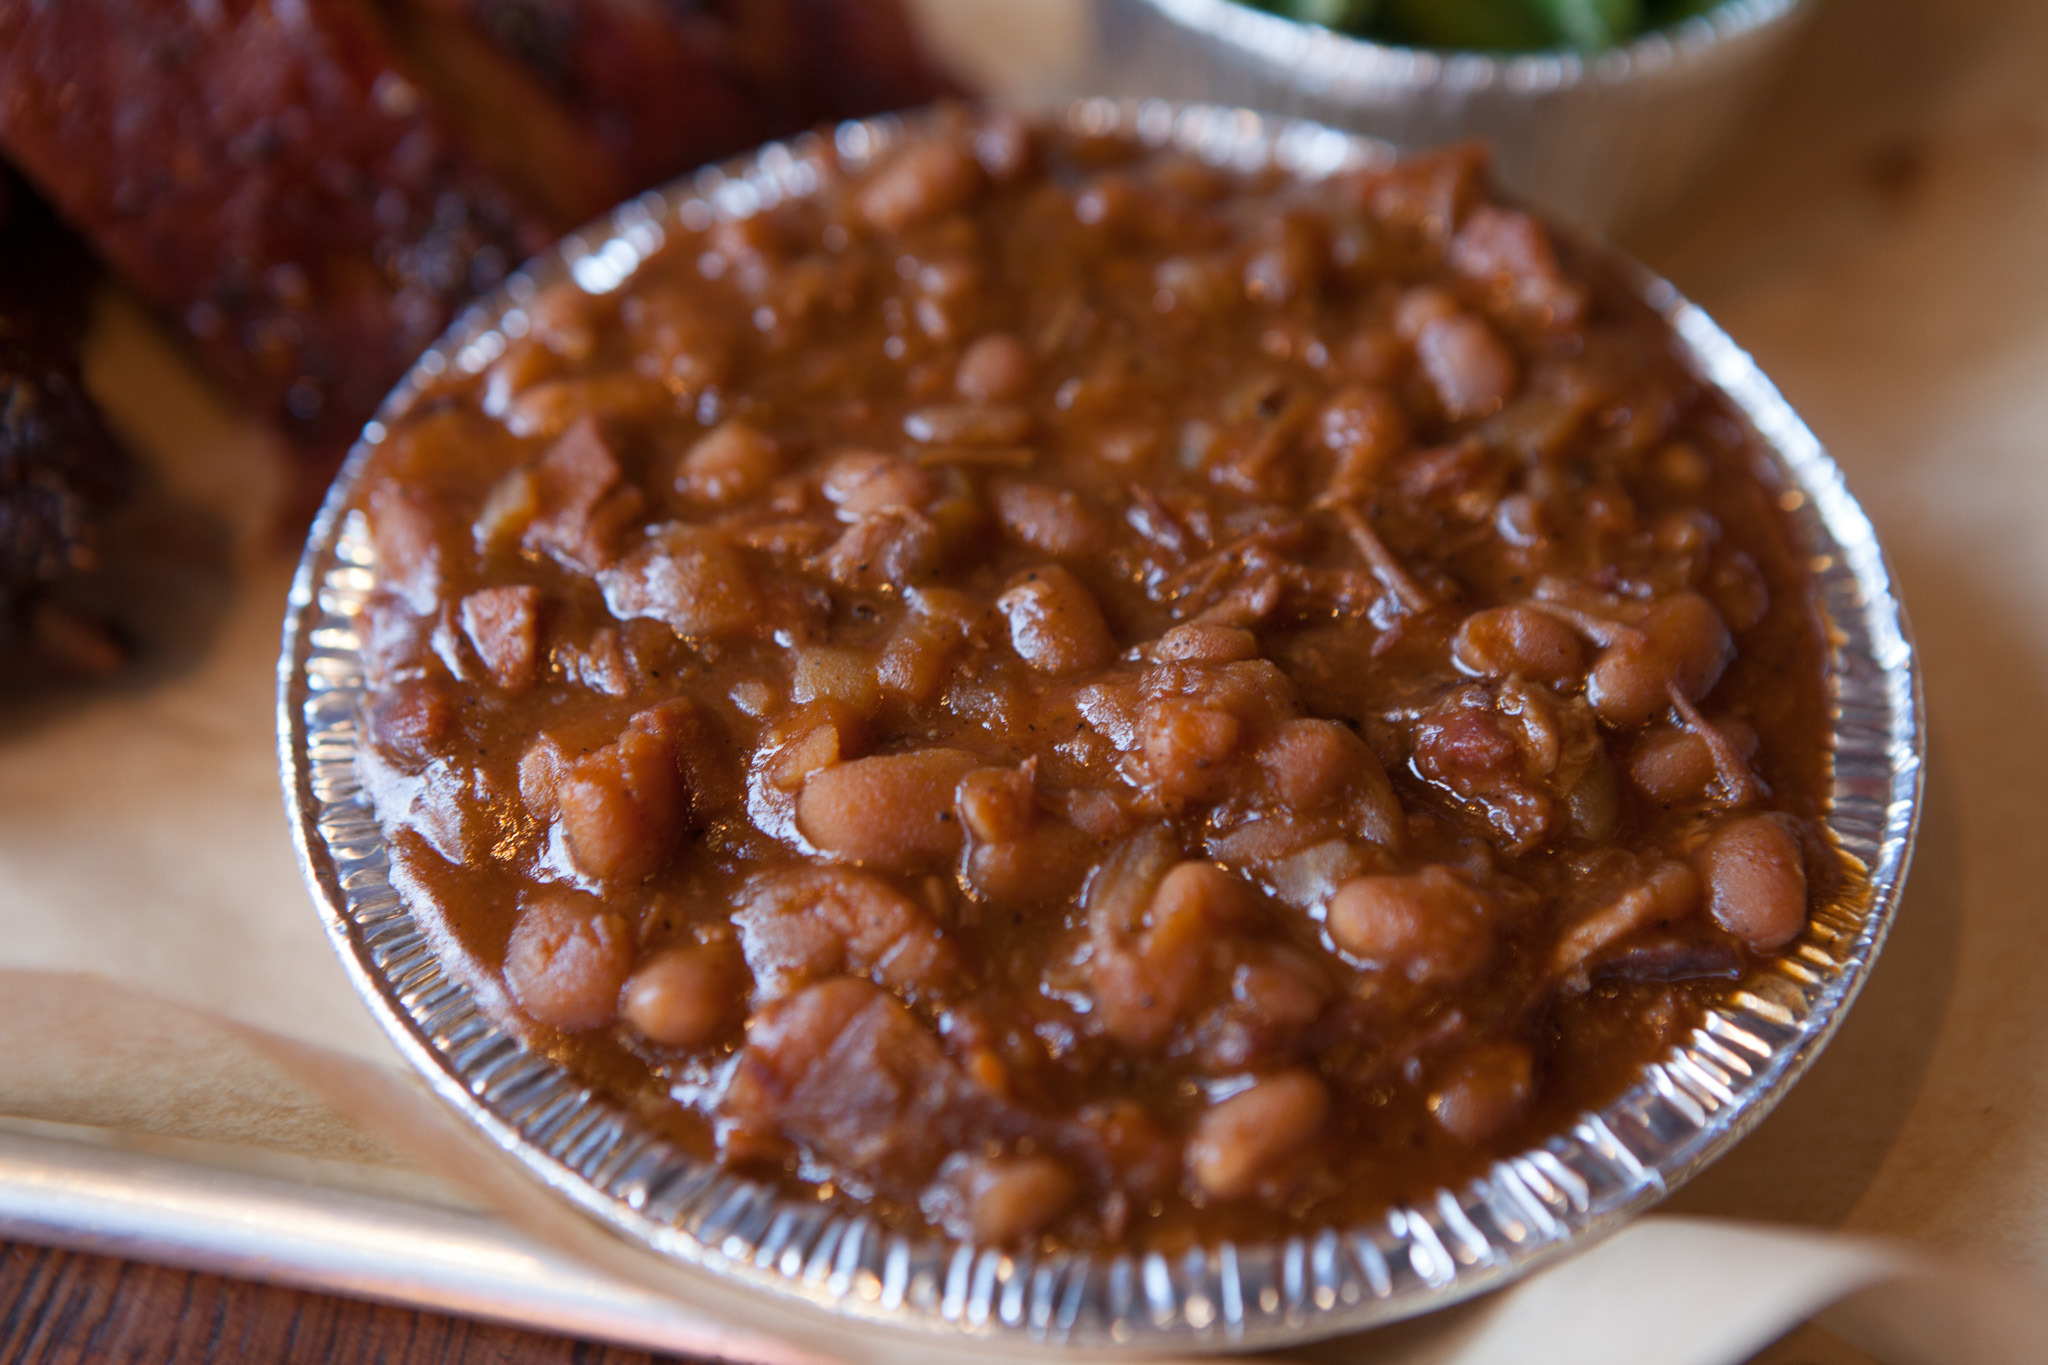 Baked beans at Q BBQ.